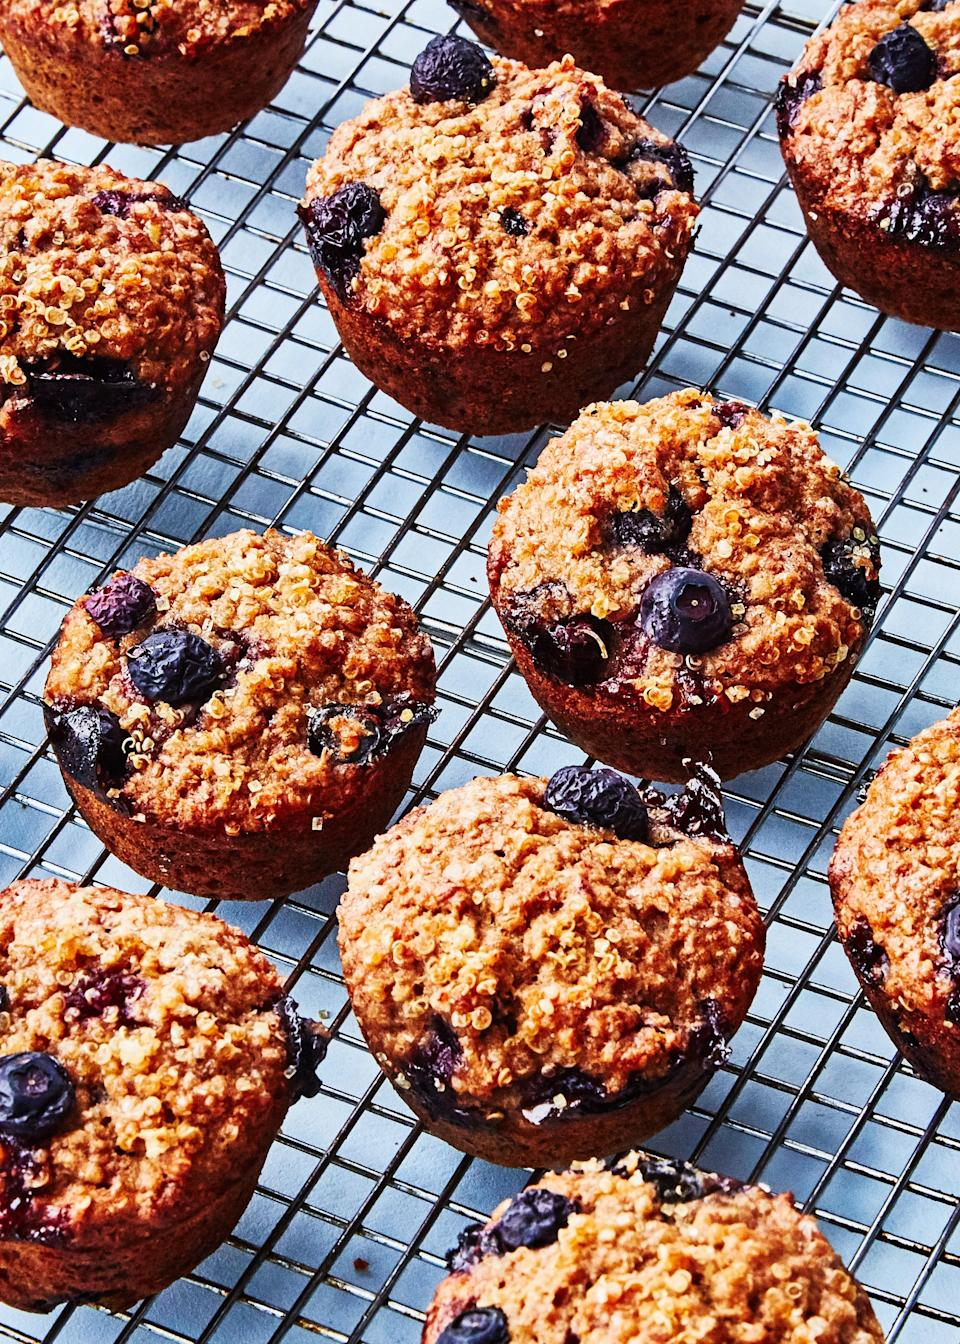 """Call us persnickety, but we generally disagree with the basic cooking instructions given on quinoa packages, which usually call for too much water, and might explain why you don't like quinoa. See below for our favorite approach. <a href=""""https://www.bonappetit.com/recipe/quinoa-banana-muffins?mbid=synd_yahoo_rss"""" rel=""""nofollow noopener"""" target=""""_blank"""" data-ylk=""""slk:See recipe."""" class=""""link rapid-noclick-resp"""">See recipe.</a>"""